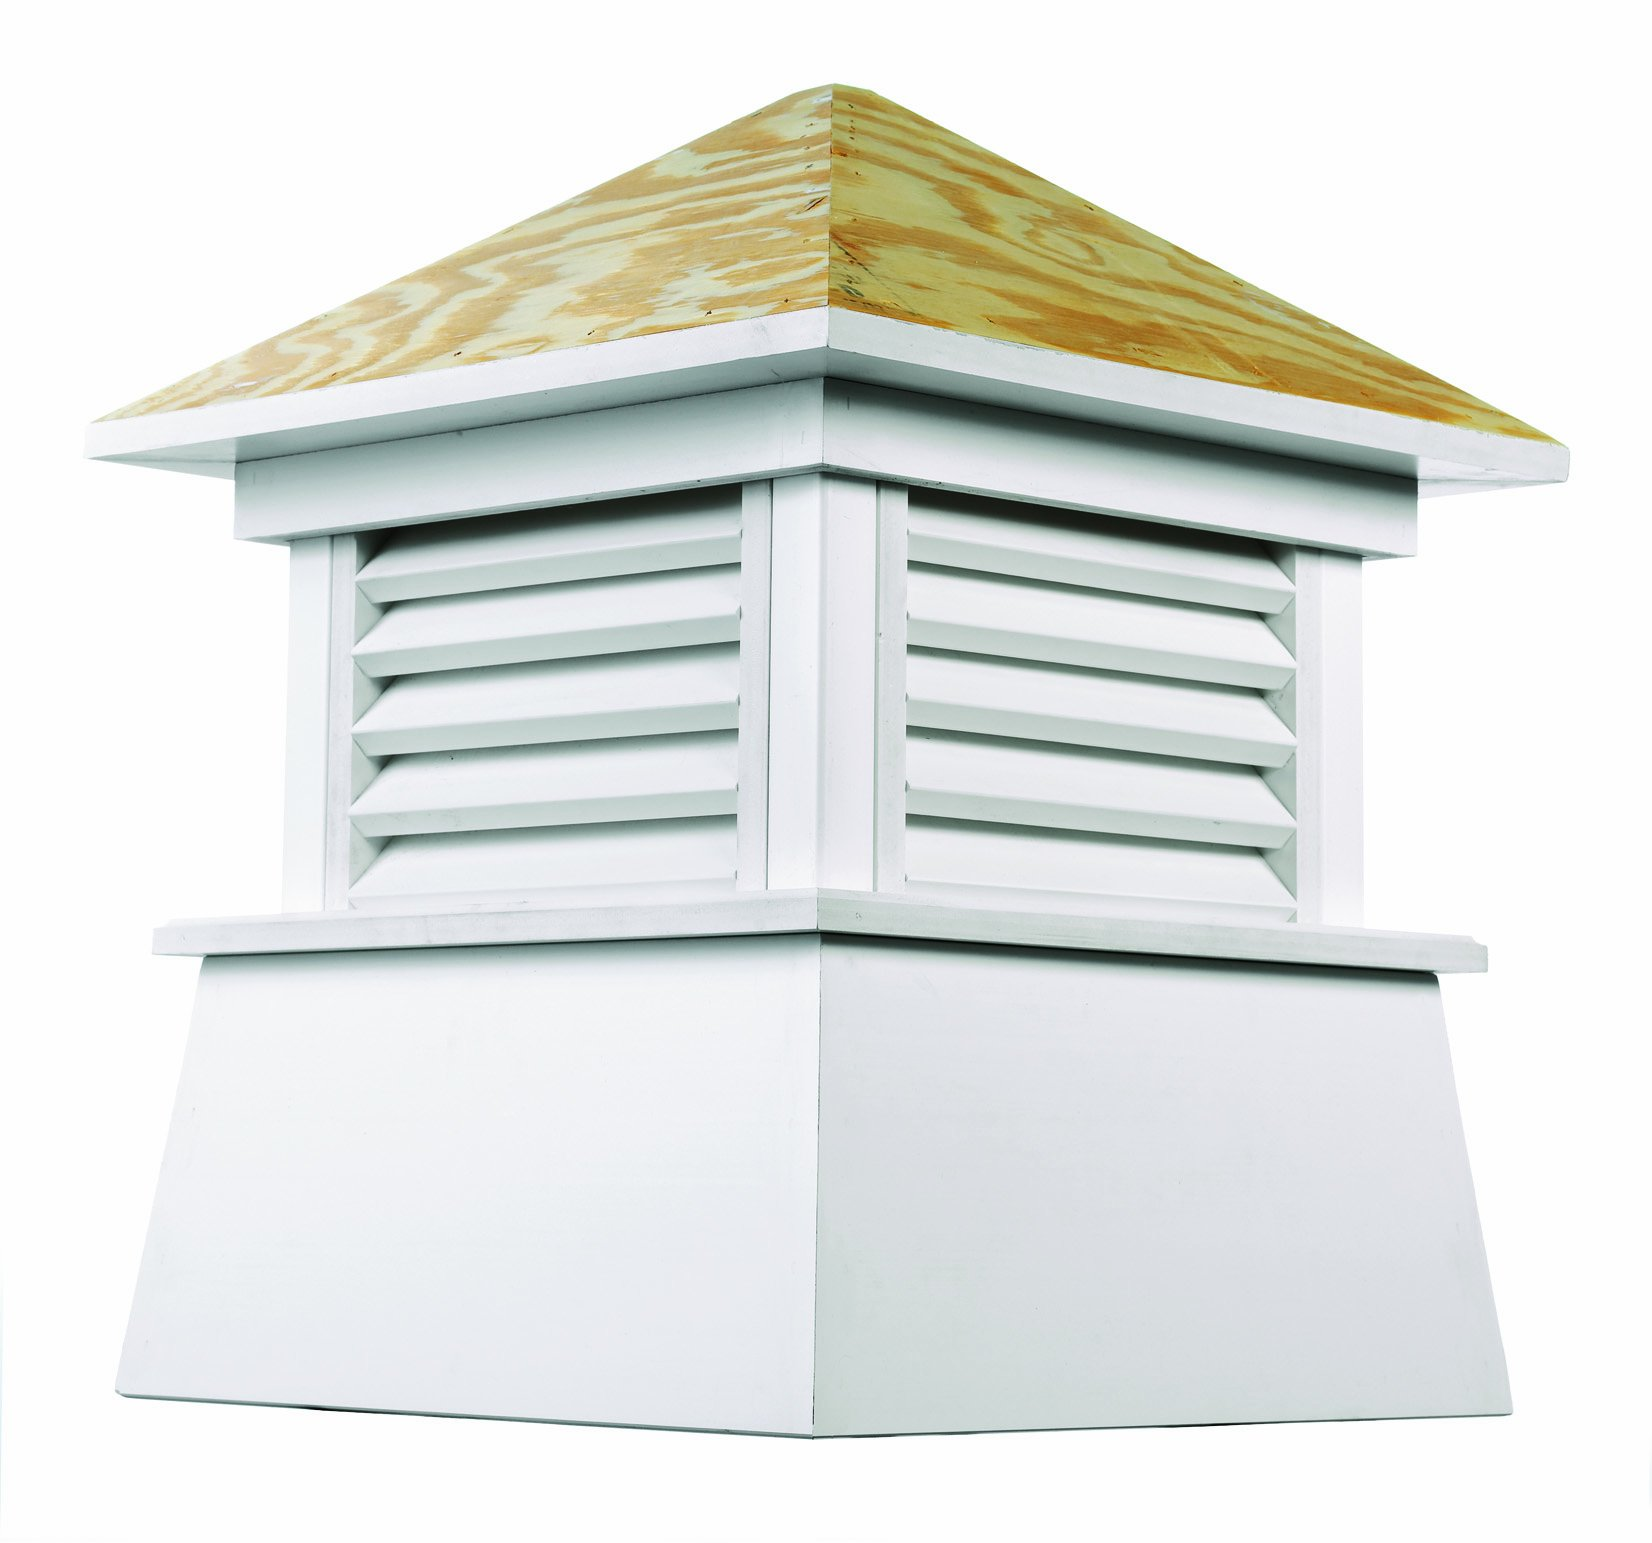 Good Directions Kent Vinyl Cupola with Wood Roof 18'' x 22'' by Good Directions